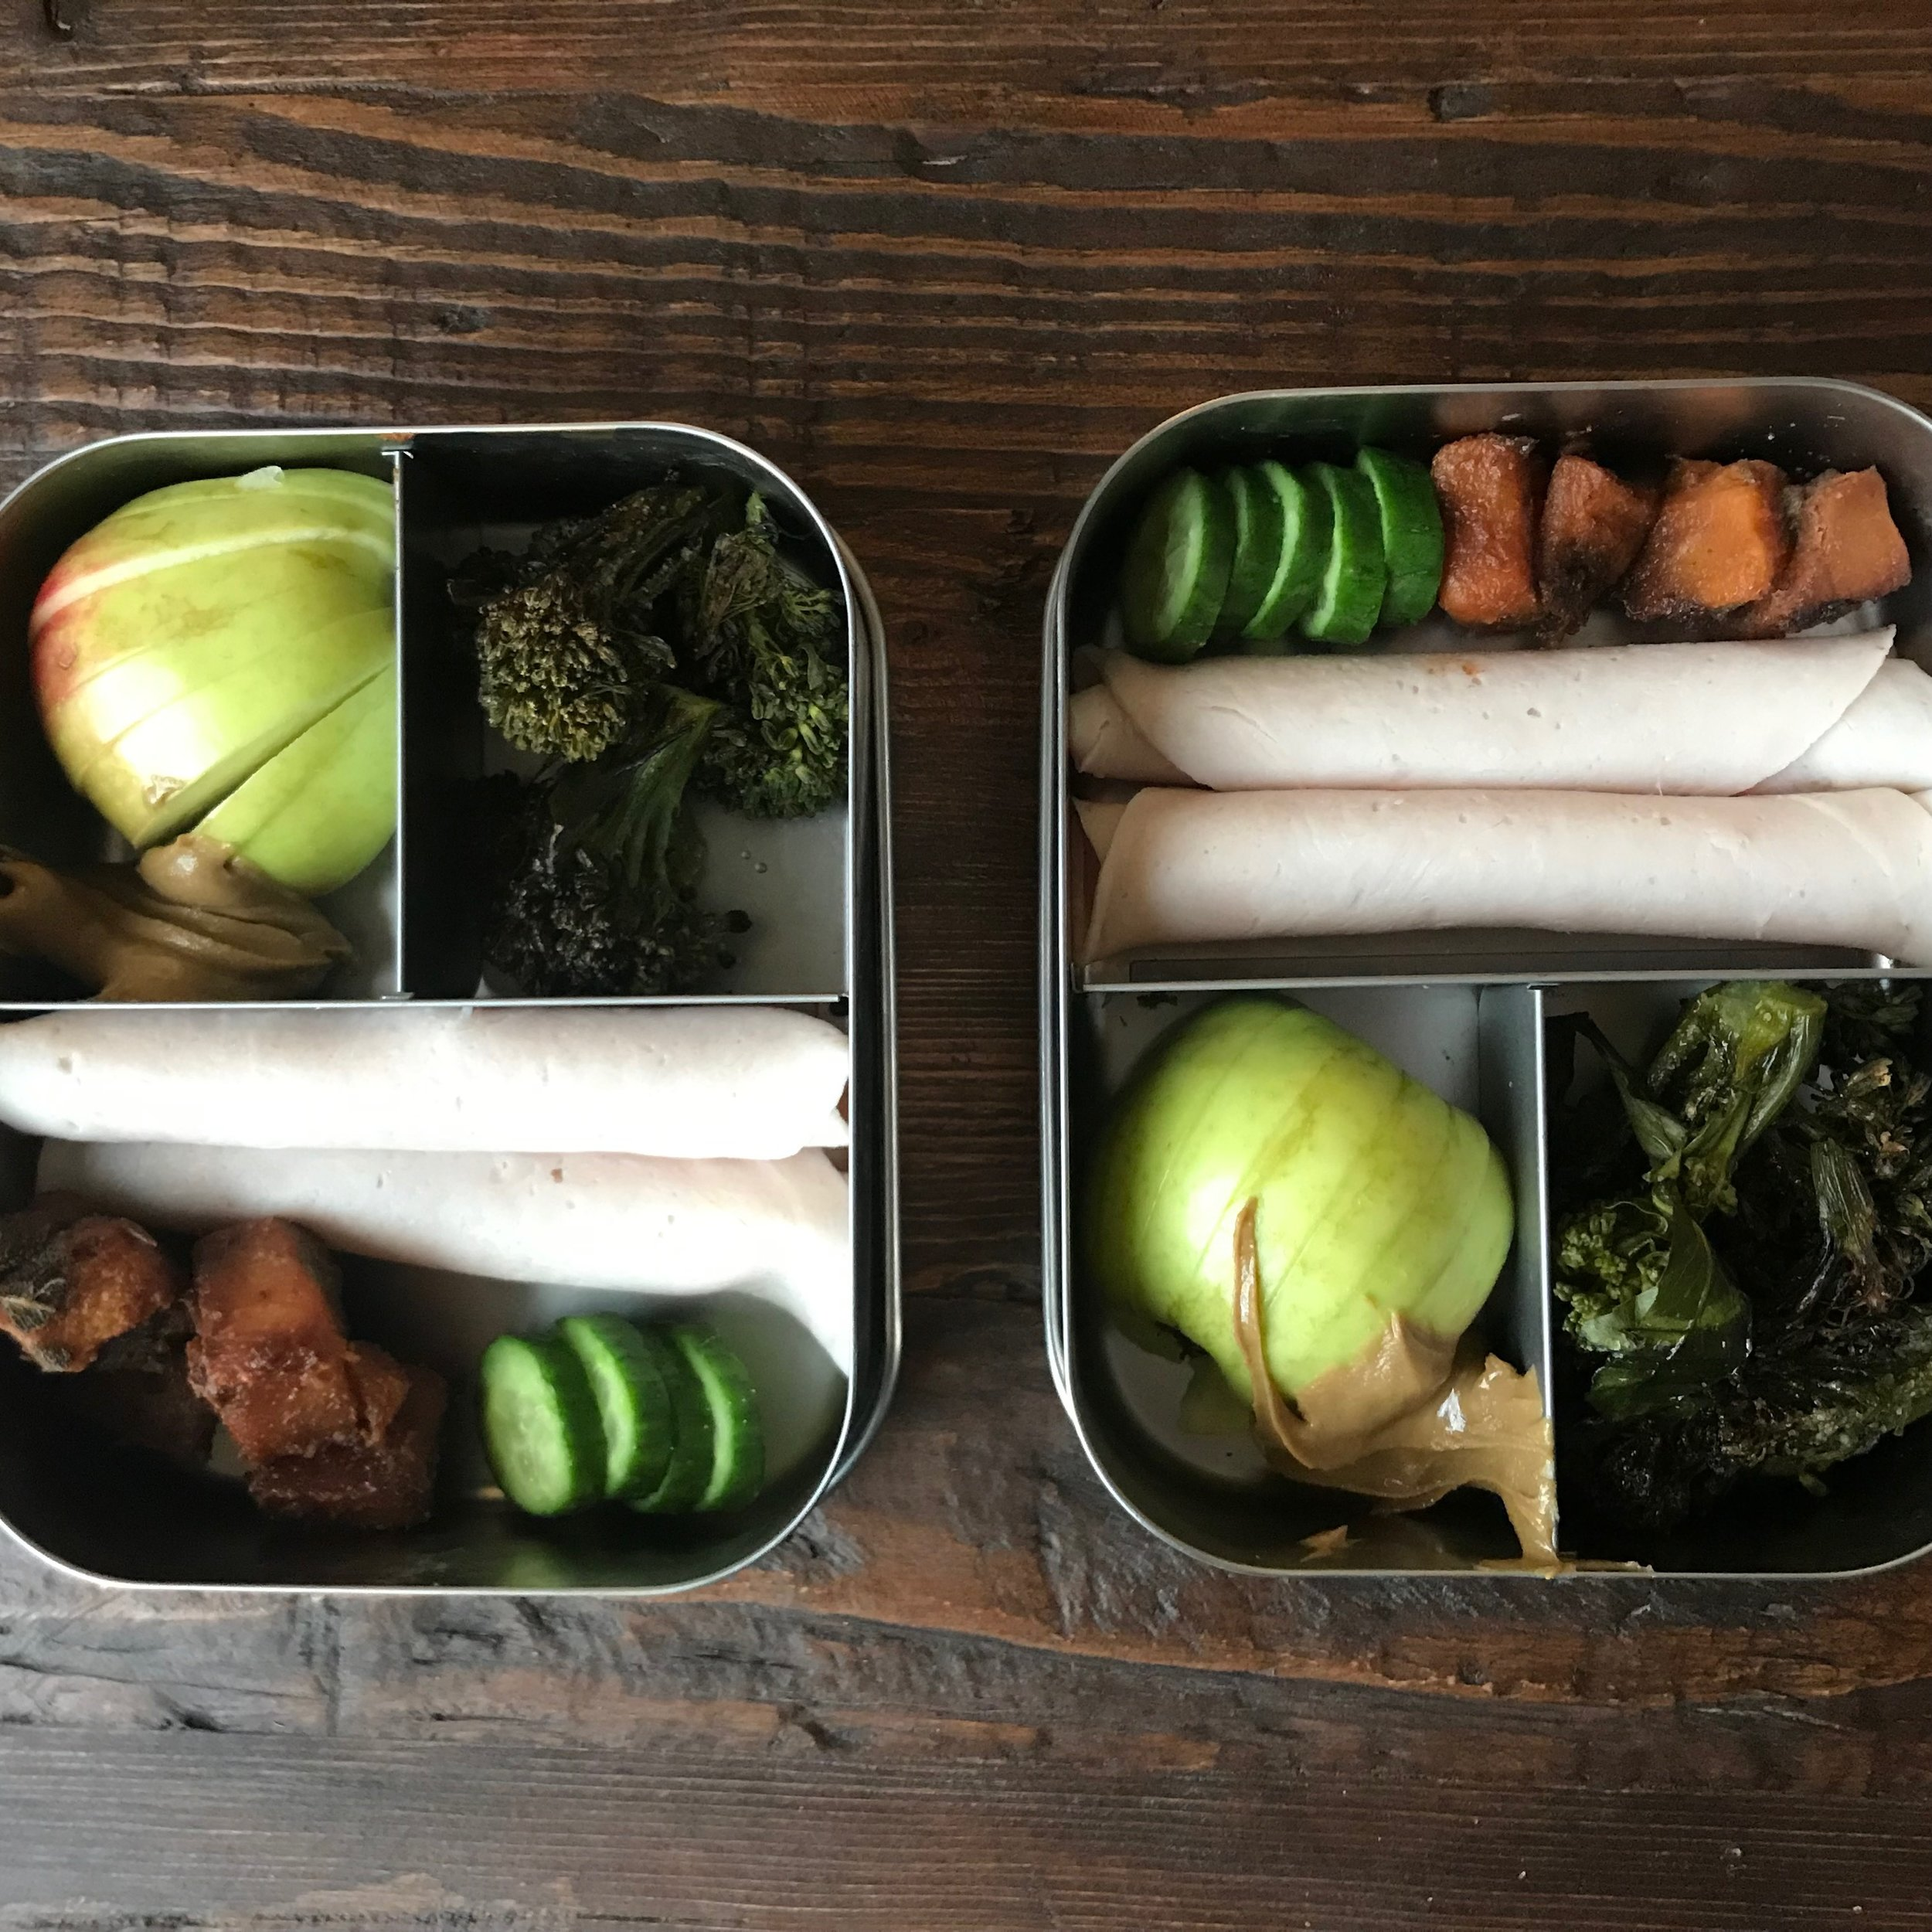 Main: Turkey, cucumbers, butternut squash  First small section: Apple and sunflower butter  Second small section: broccoli heads